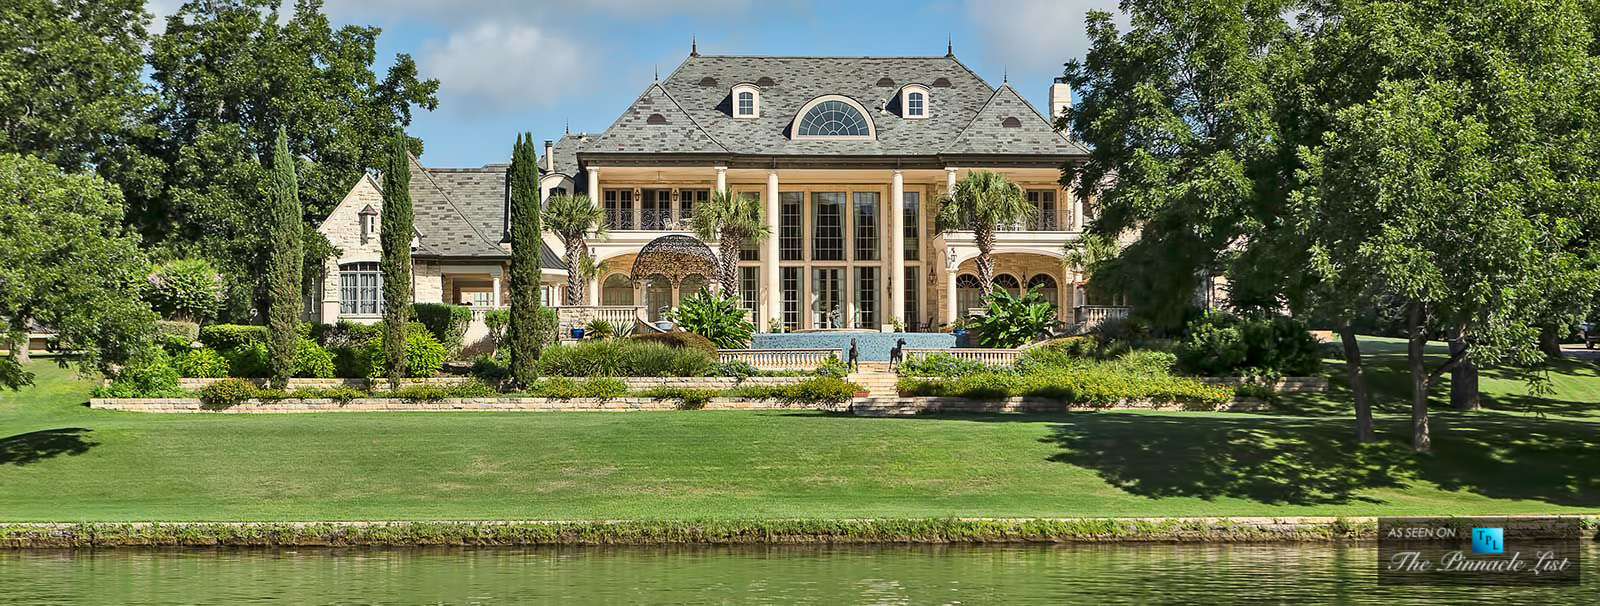 Texas - Luxury Waterfront Living - 3 States in the Lower 48 You May Not Have Considered